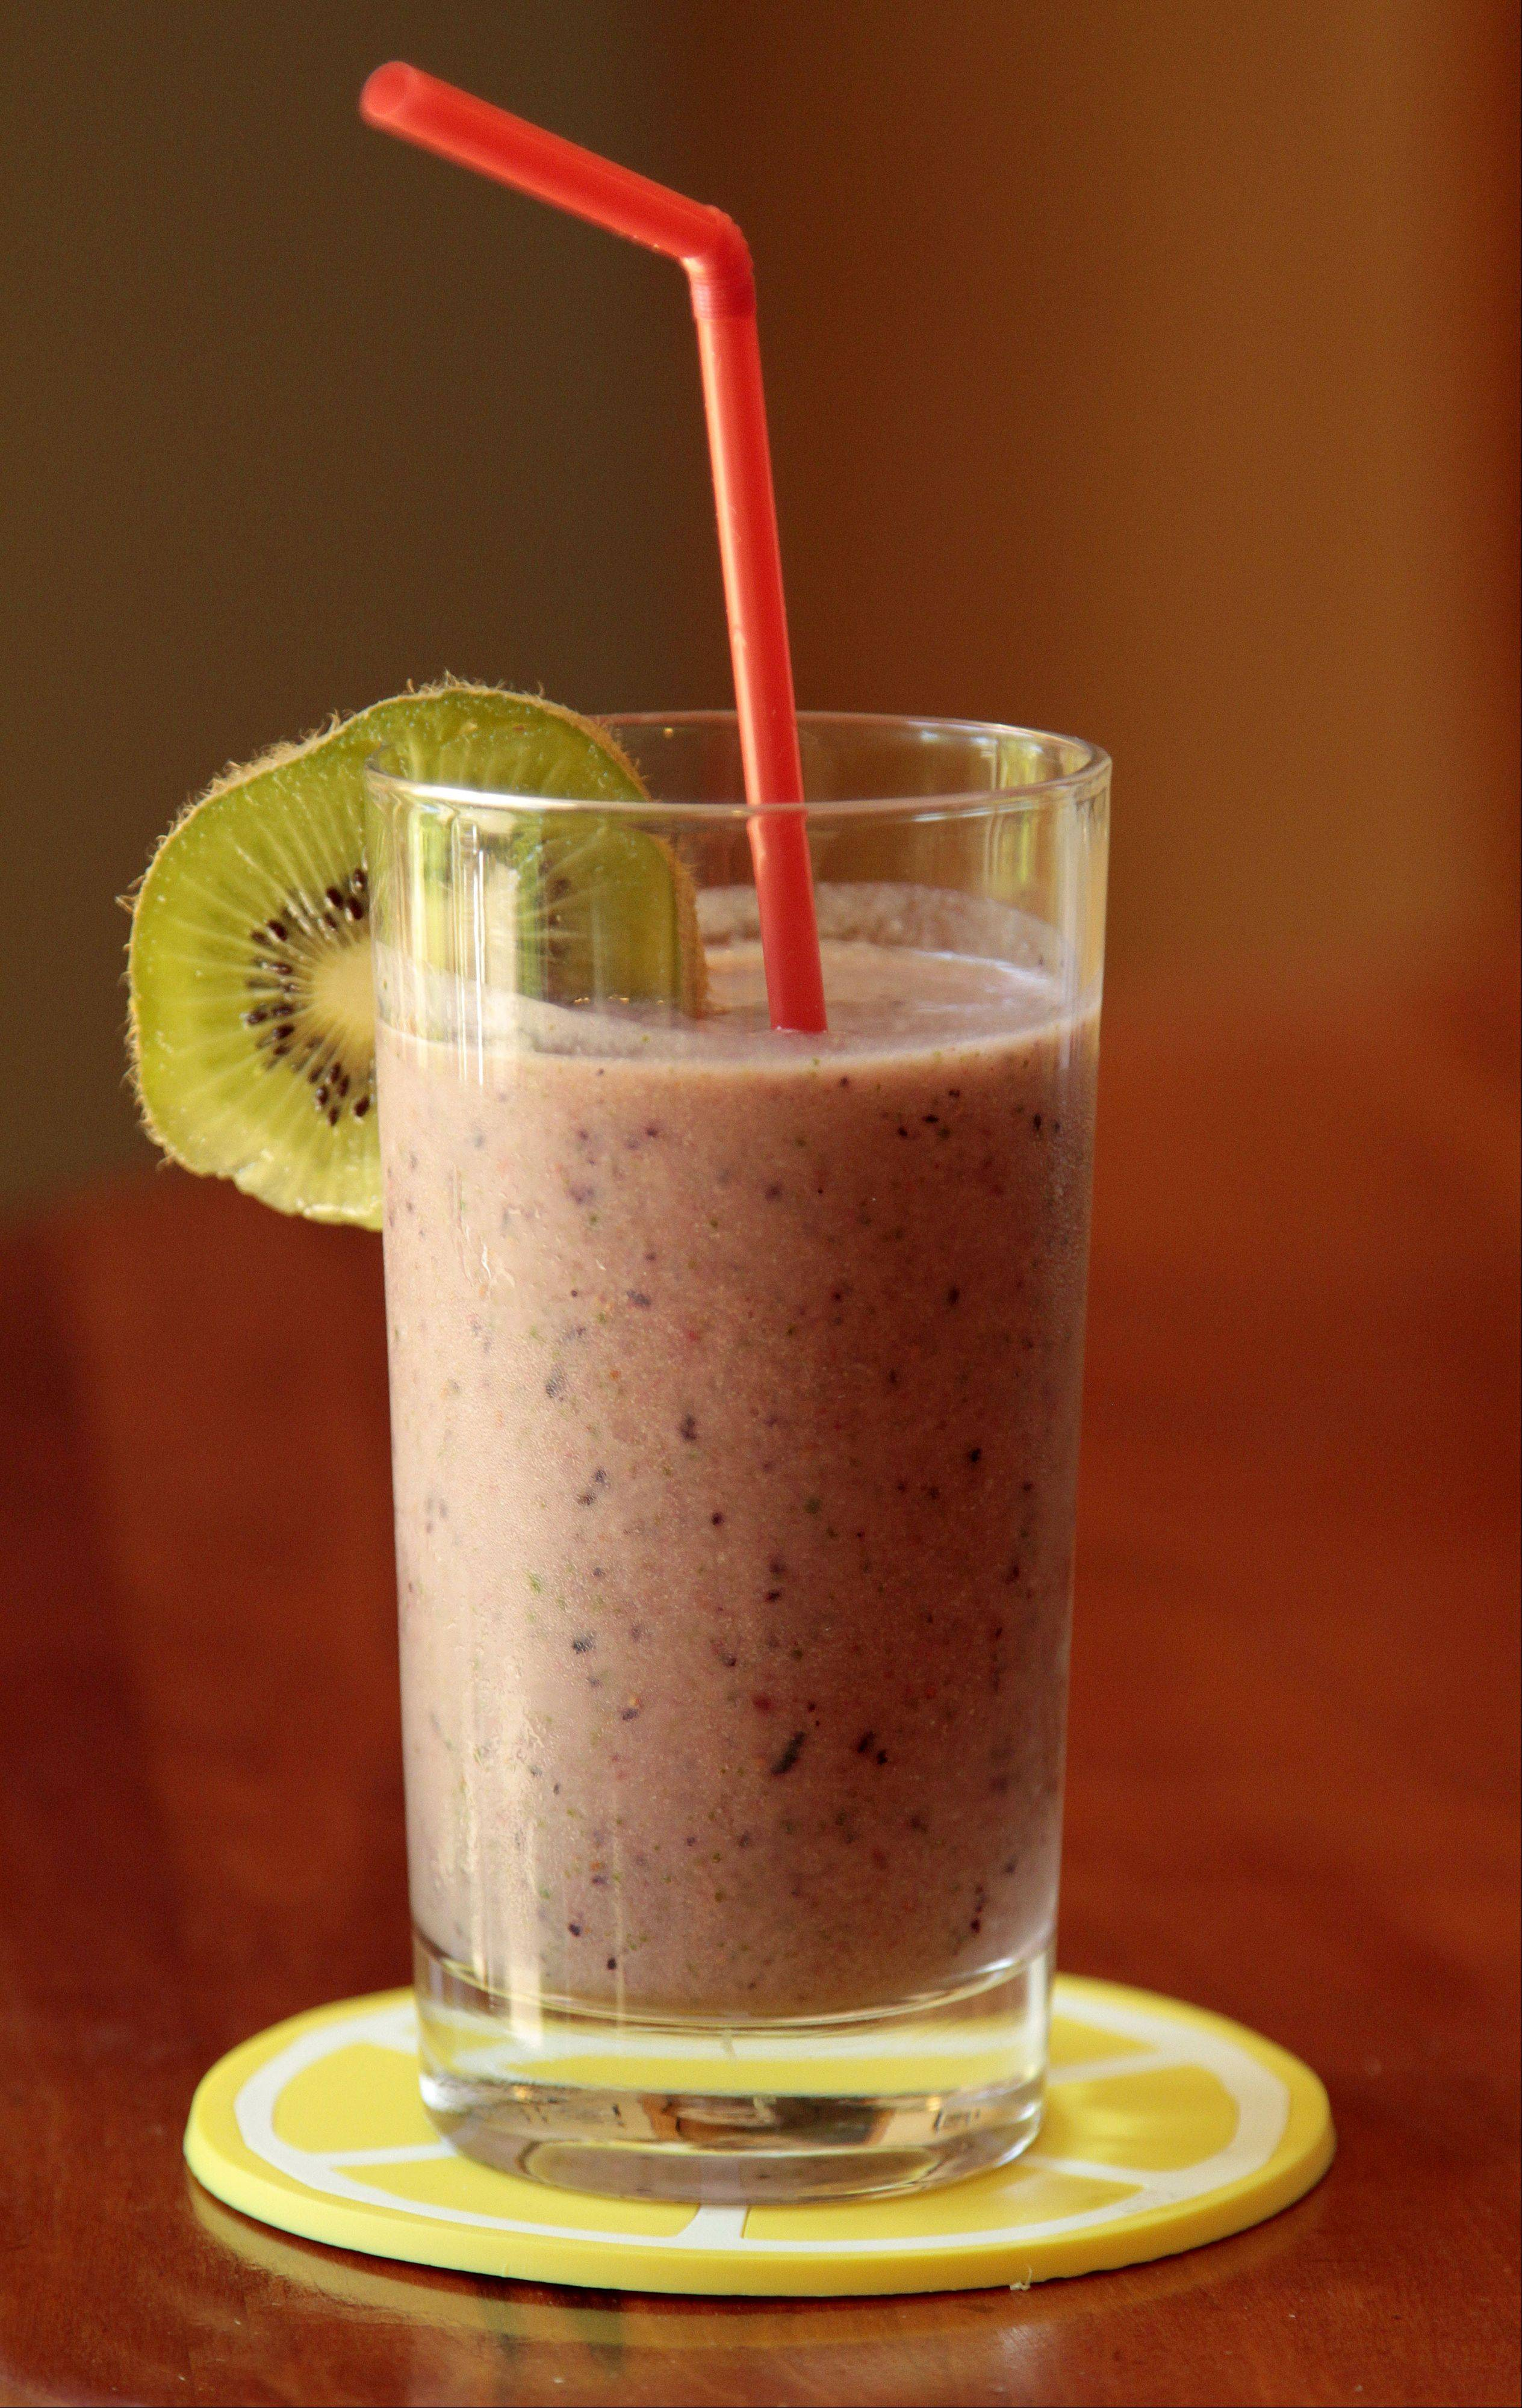 You don't need to stop at a convenient store for an energy boost. A homemade smoothie of blended blueberries, strawberries, kiwi, spinach, apple juice and milk gets you going.